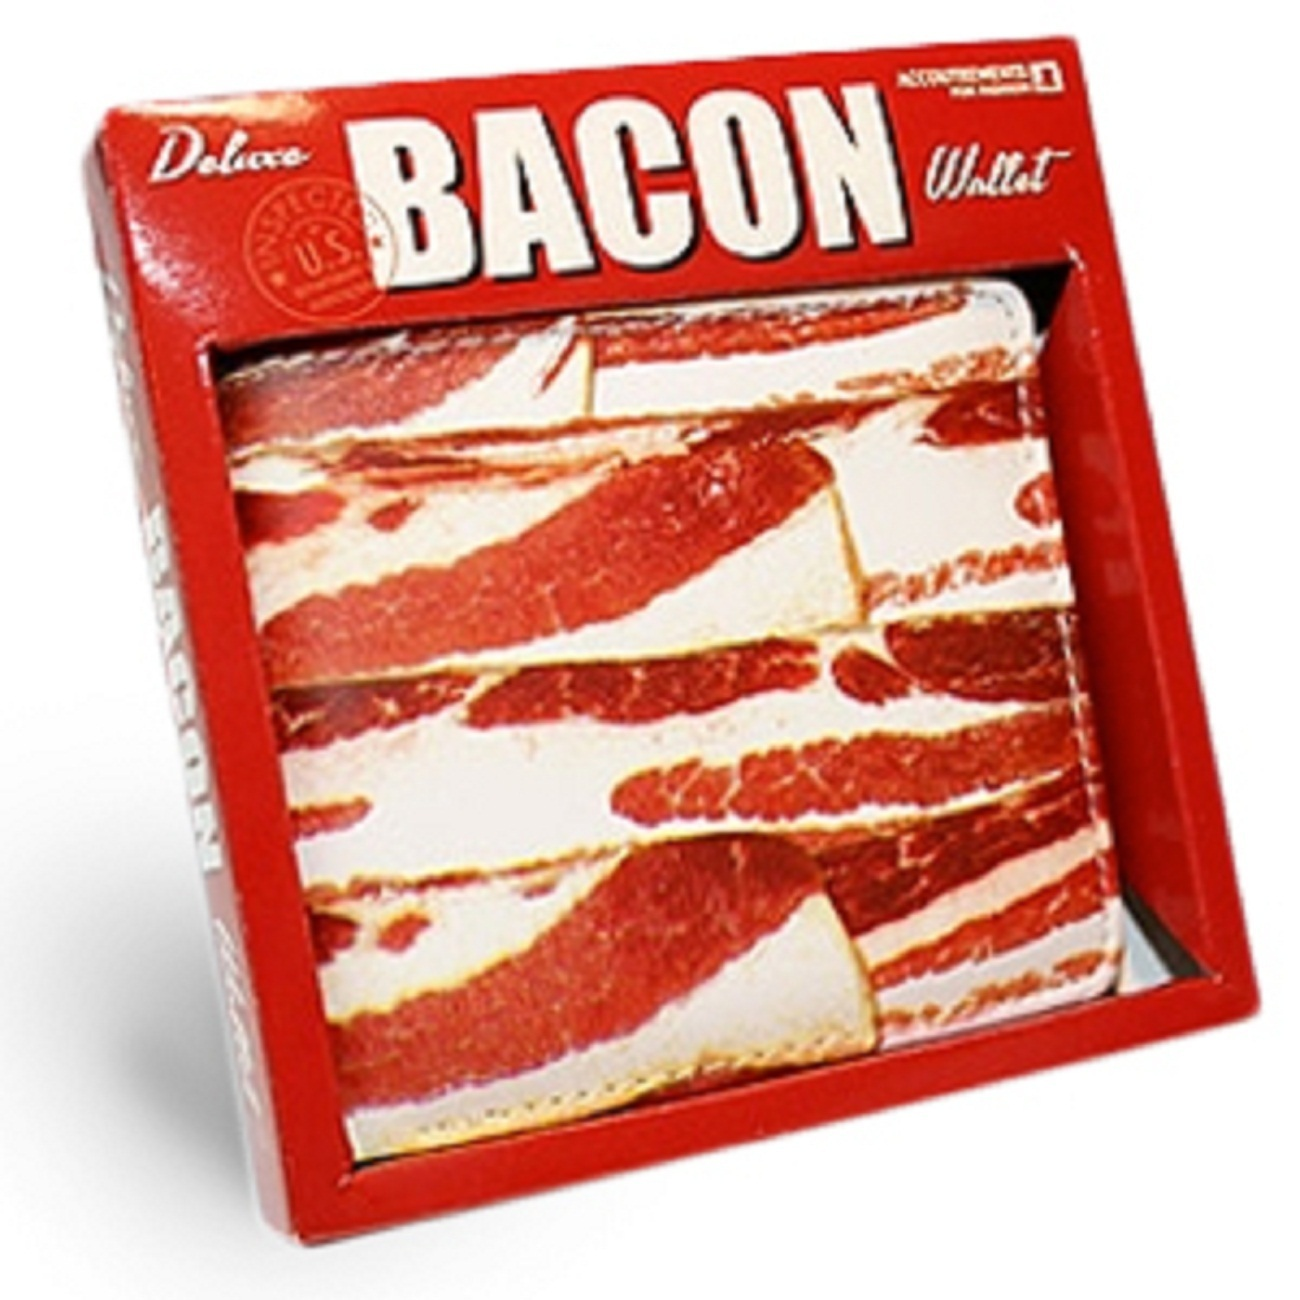 Bacon wallet box2